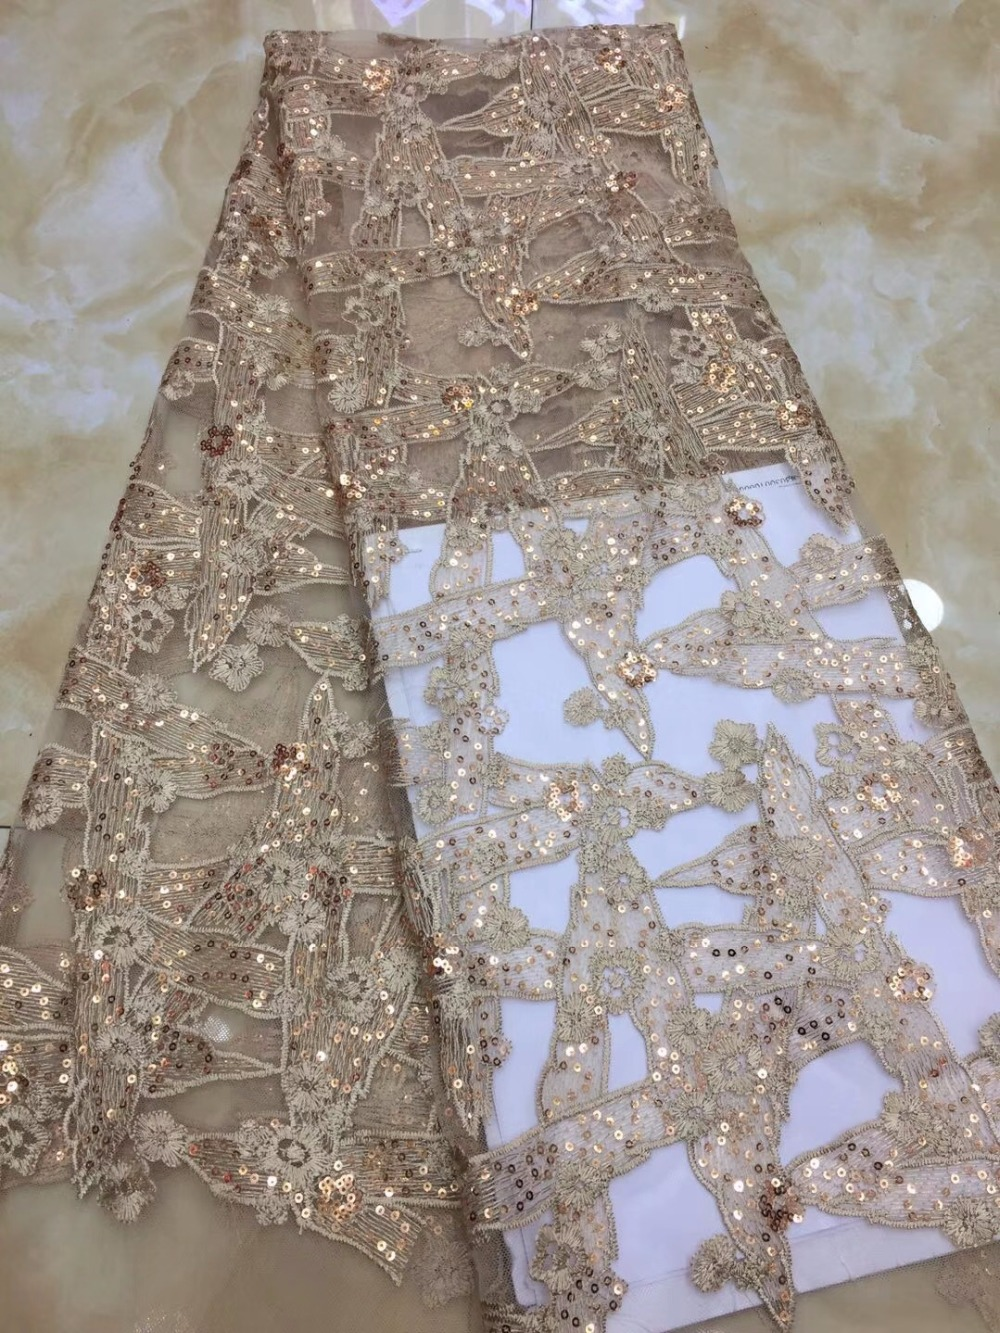 Fashion sequins Lace High Quality African Tulle Lace Fabric New Arrival Nigerian Lace Fabrics For Wedding DressFashion sequins Lace High Quality African Tulle Lace Fabric New Arrival Nigerian Lace Fabrics For Wedding Dress